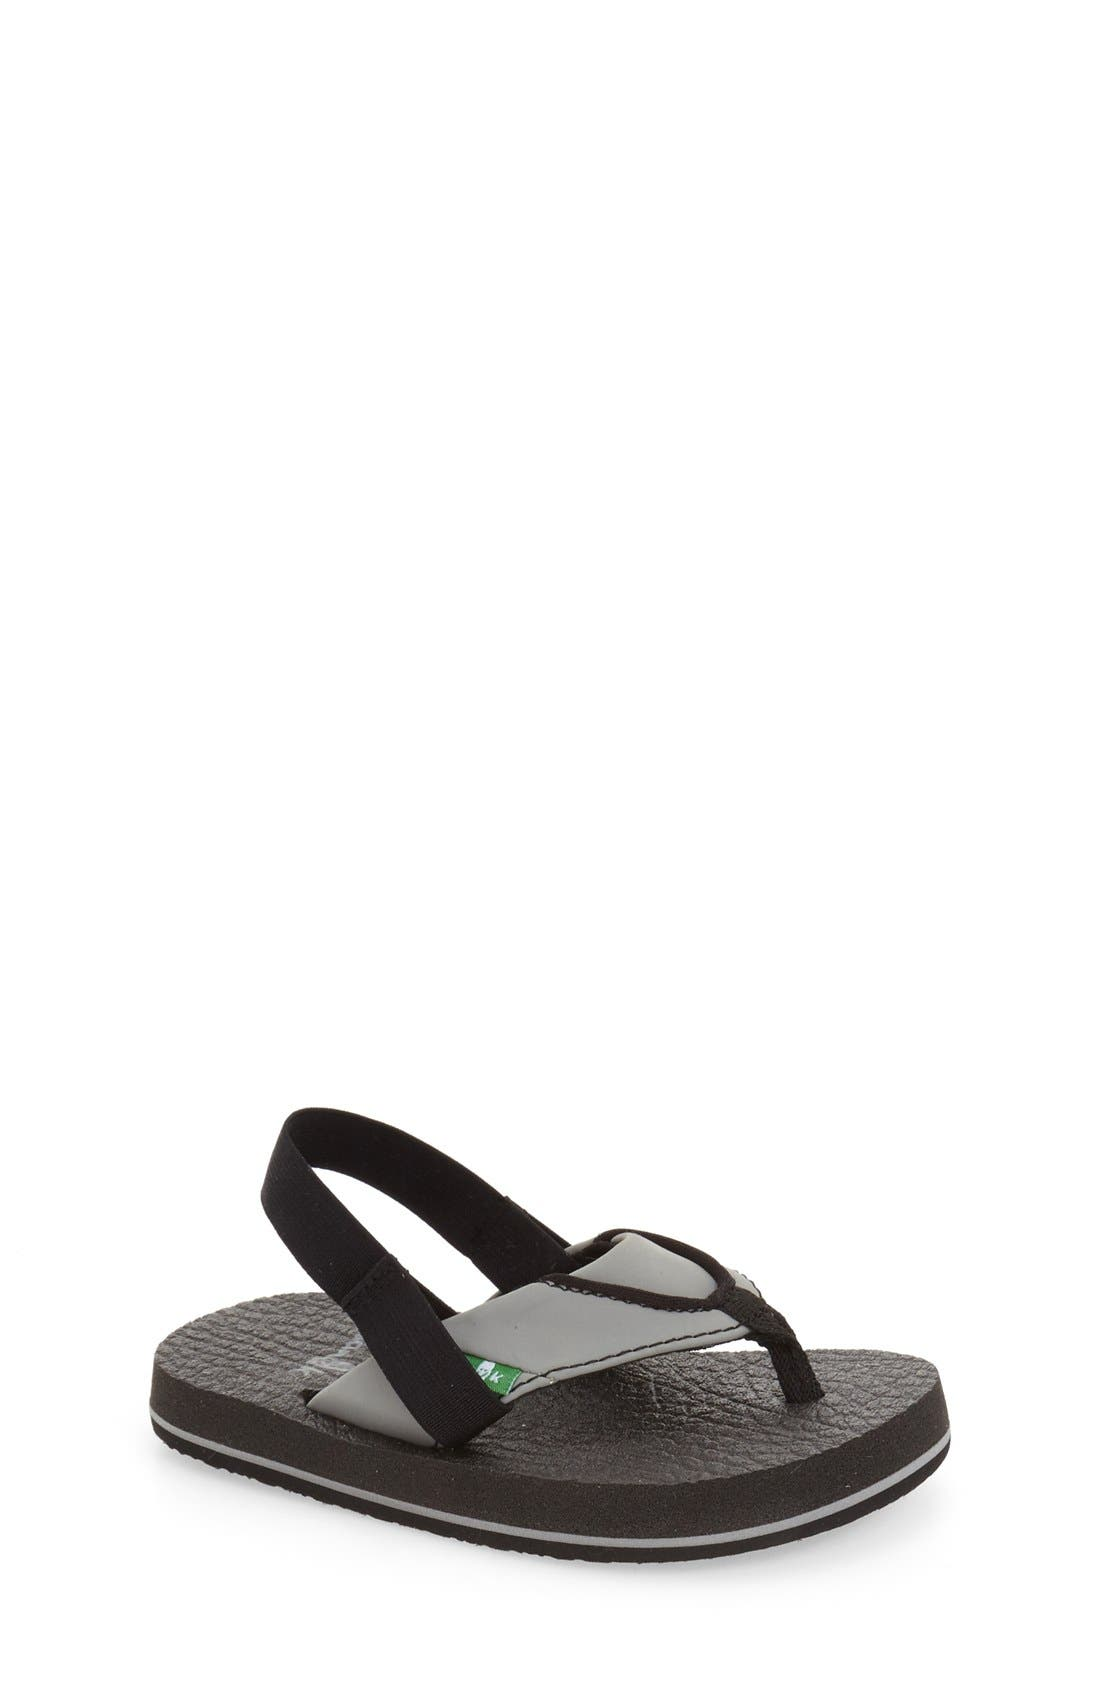 SANUK 'Root Beer' Sandal